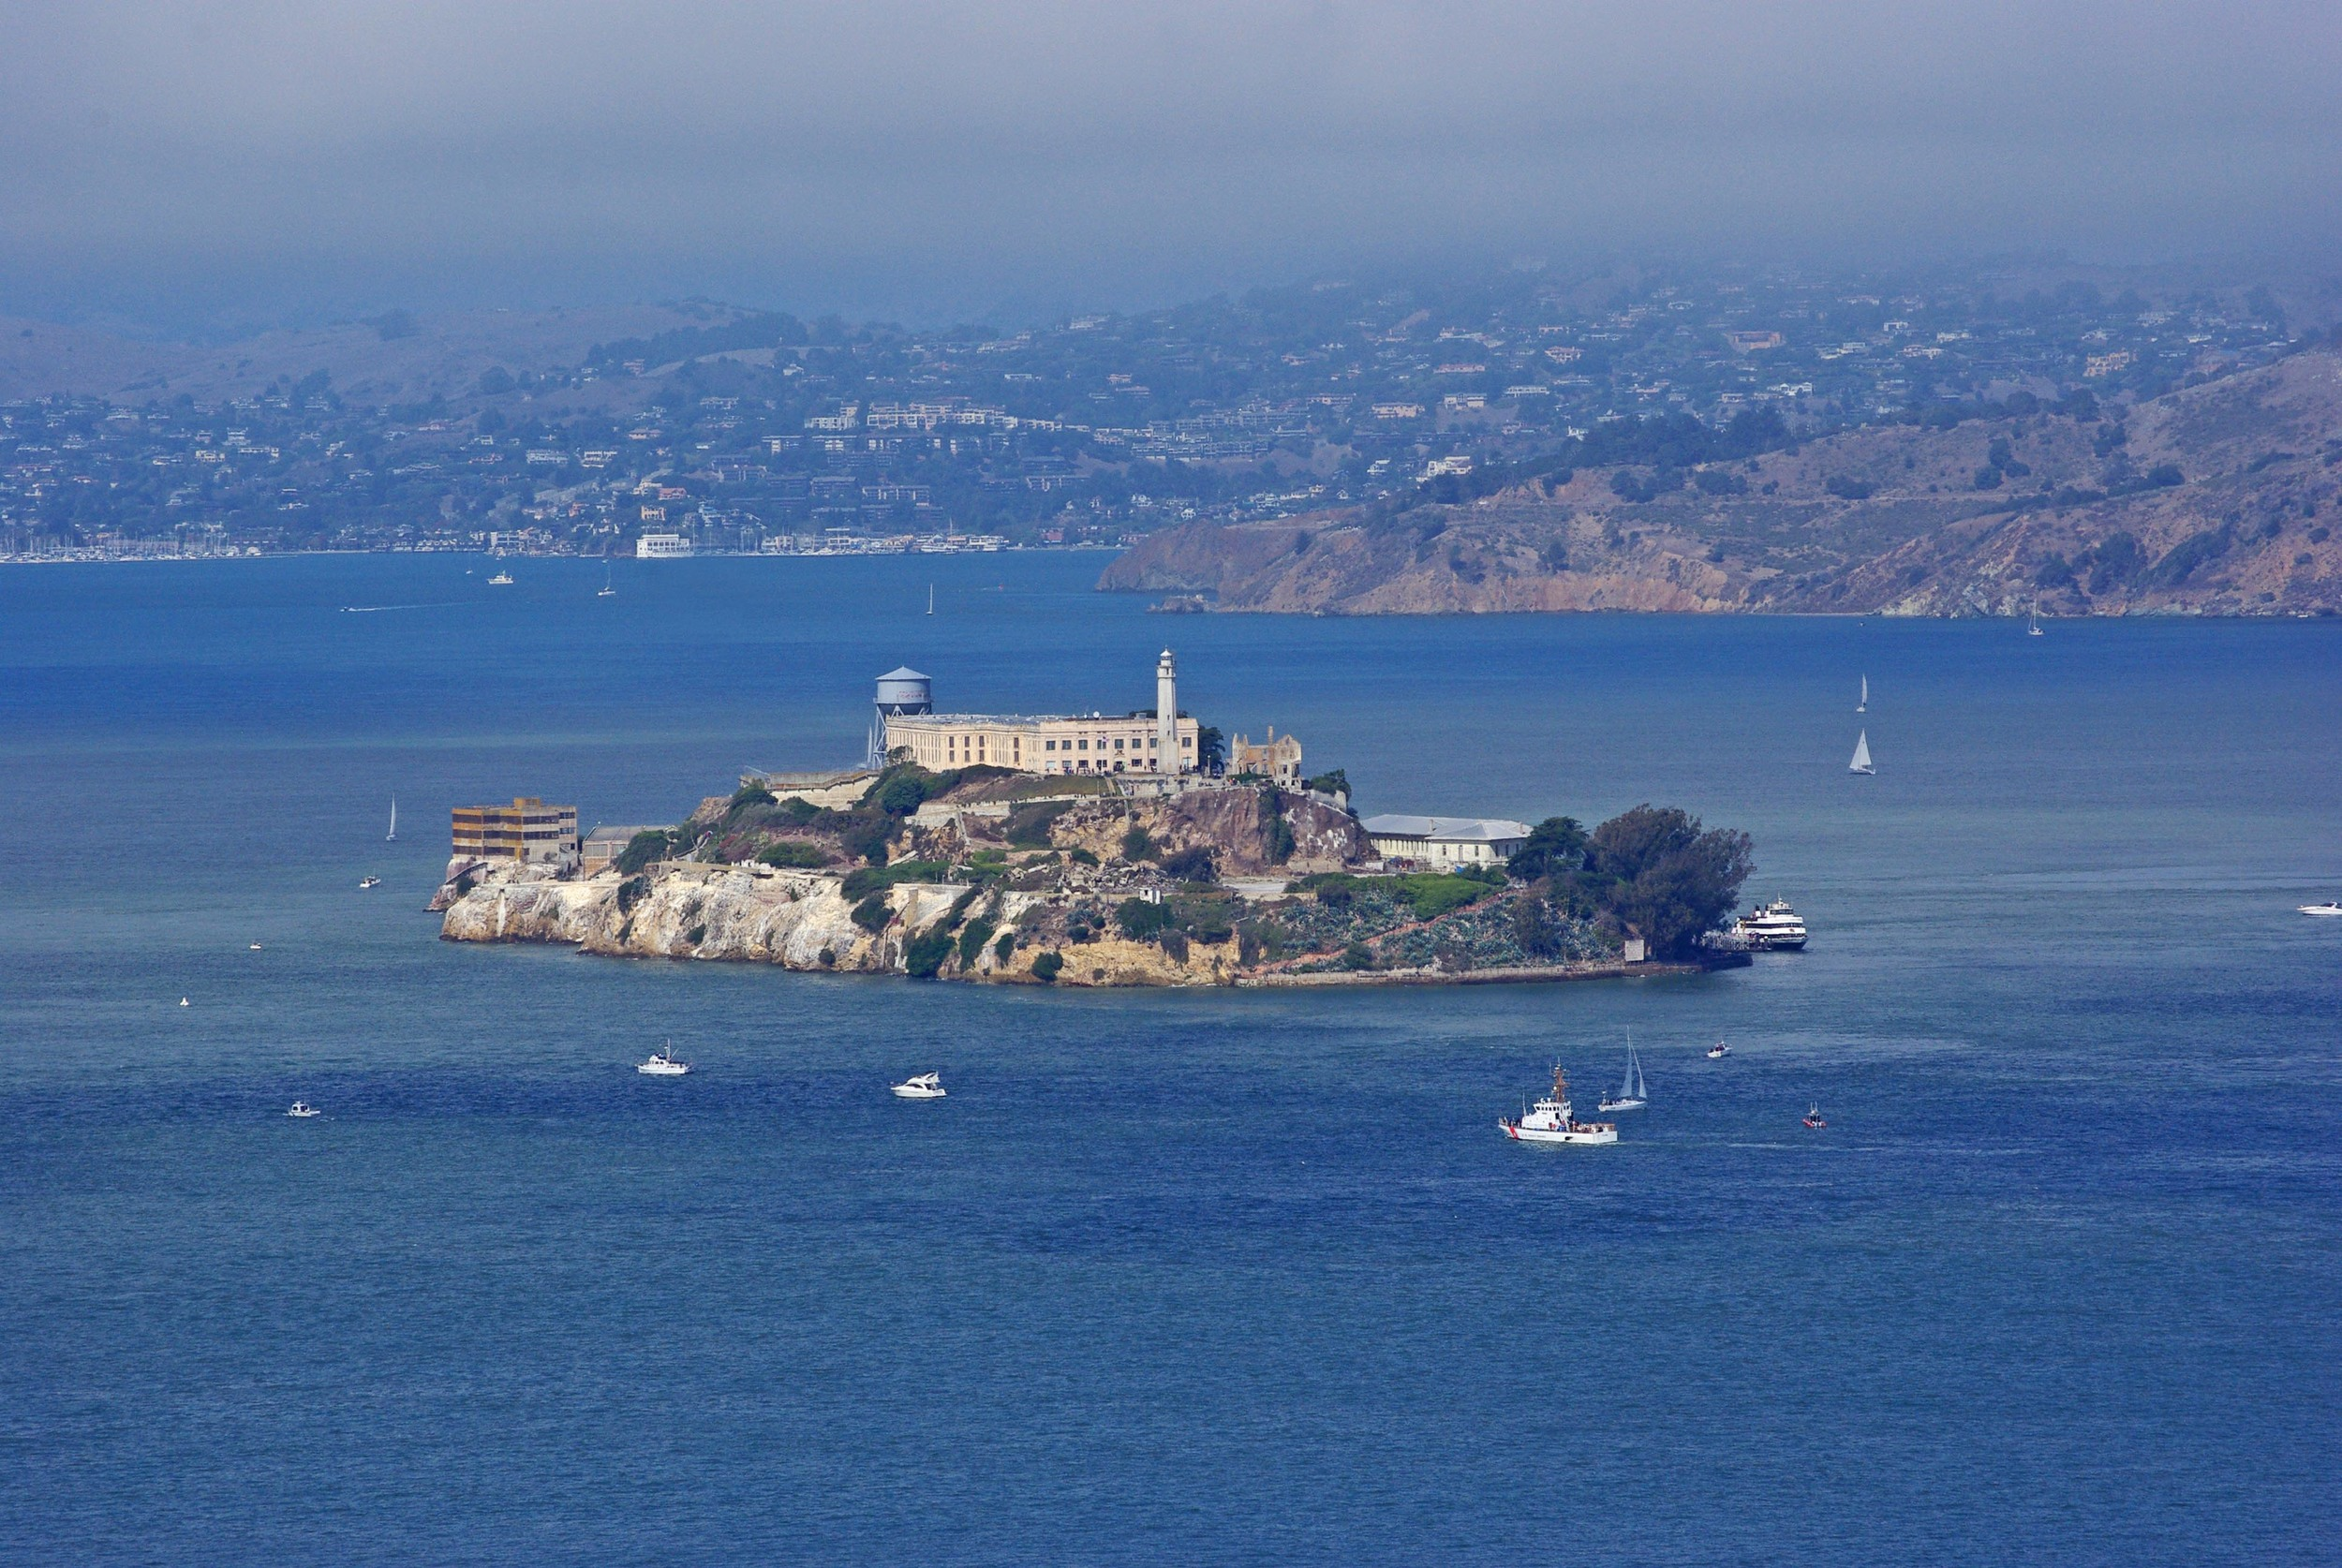 12.Learn about Alcatraz with an audio tour